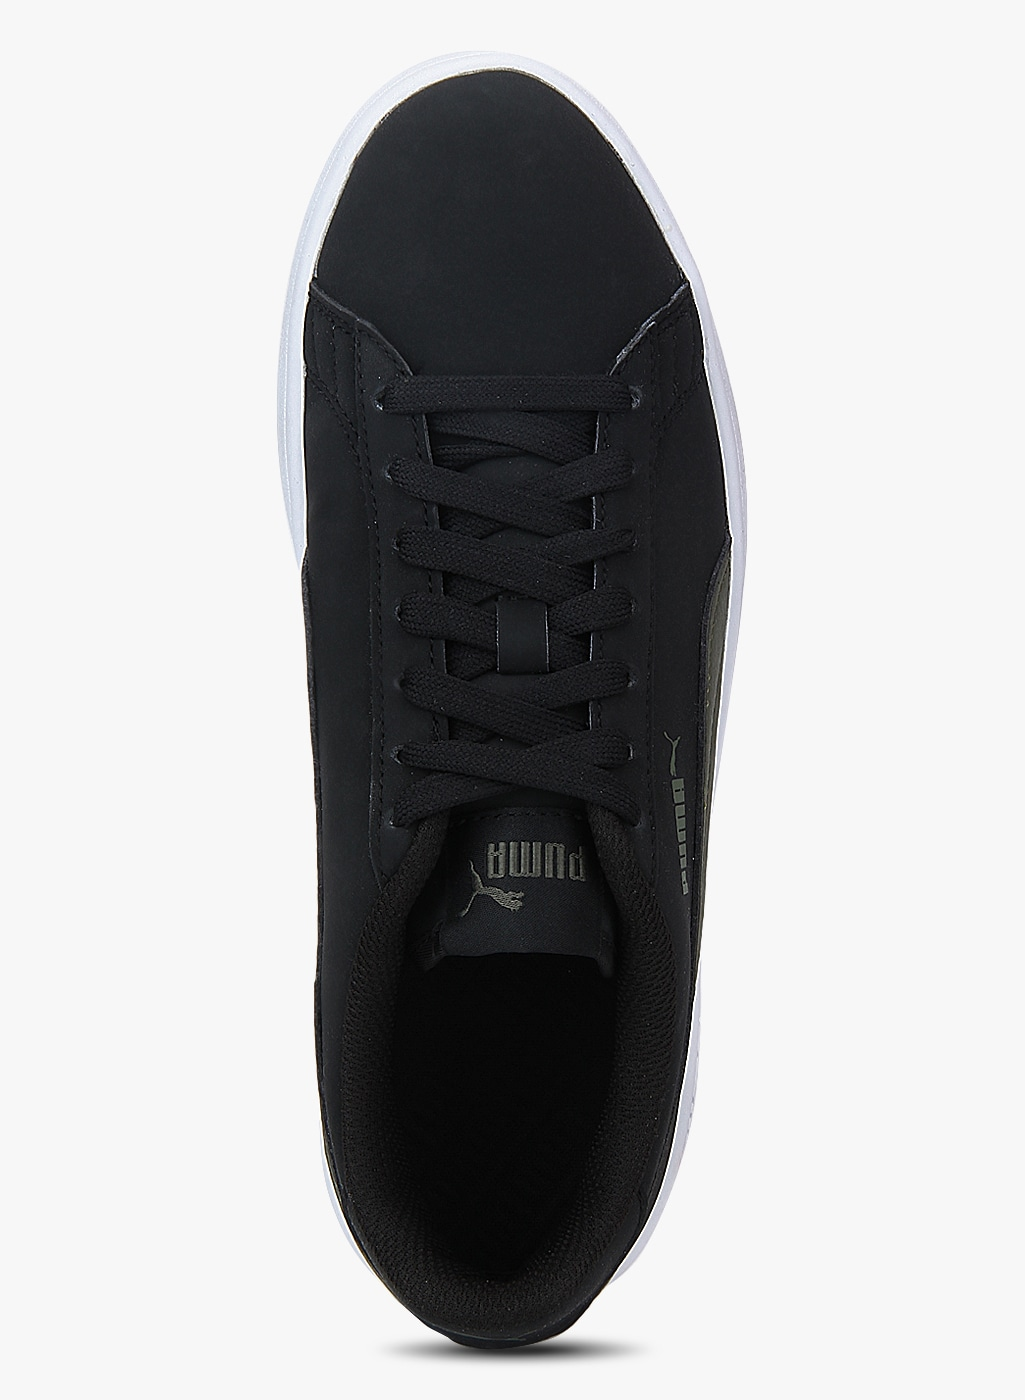 9f301002faa949 Puma Smash Sd Black Sneakers 5132732.htm Men Footwear - Buy Puma Smash Sd Black  Sneakers 5132732.htm Men Footwear online in India - Jabong